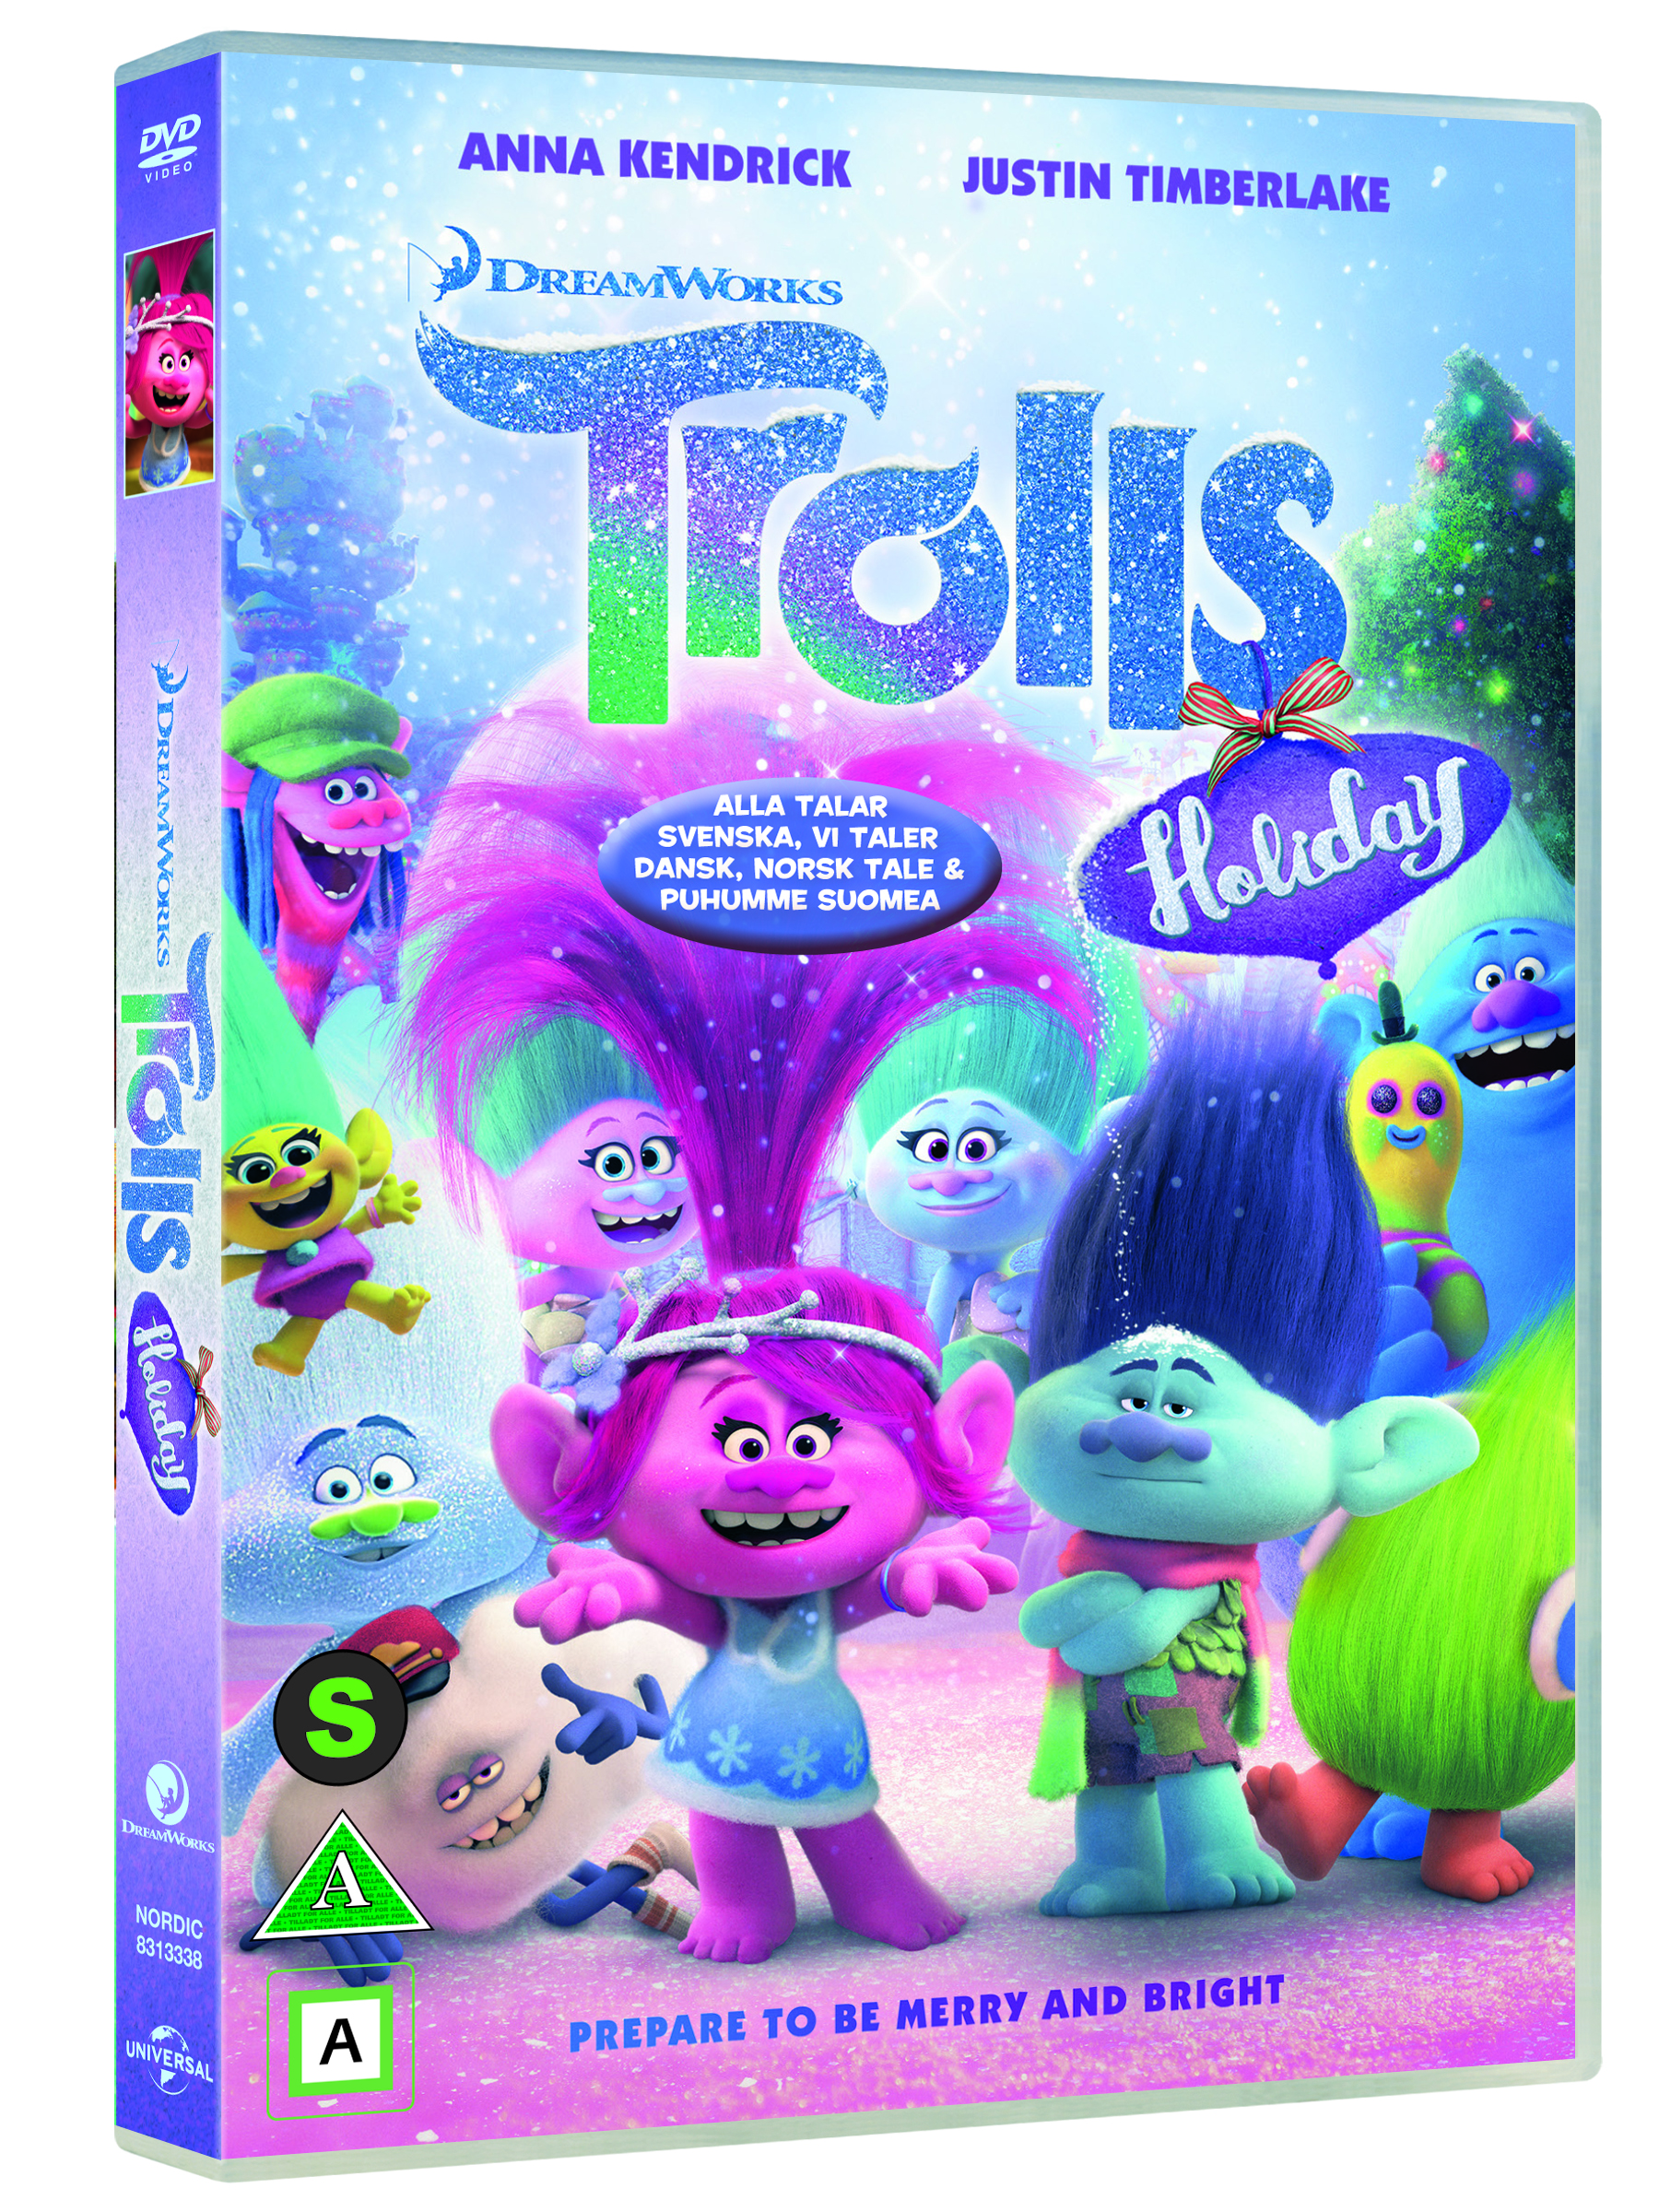 Trolls Holiday 2017 Movie Poster >> Trolls Holiday Special